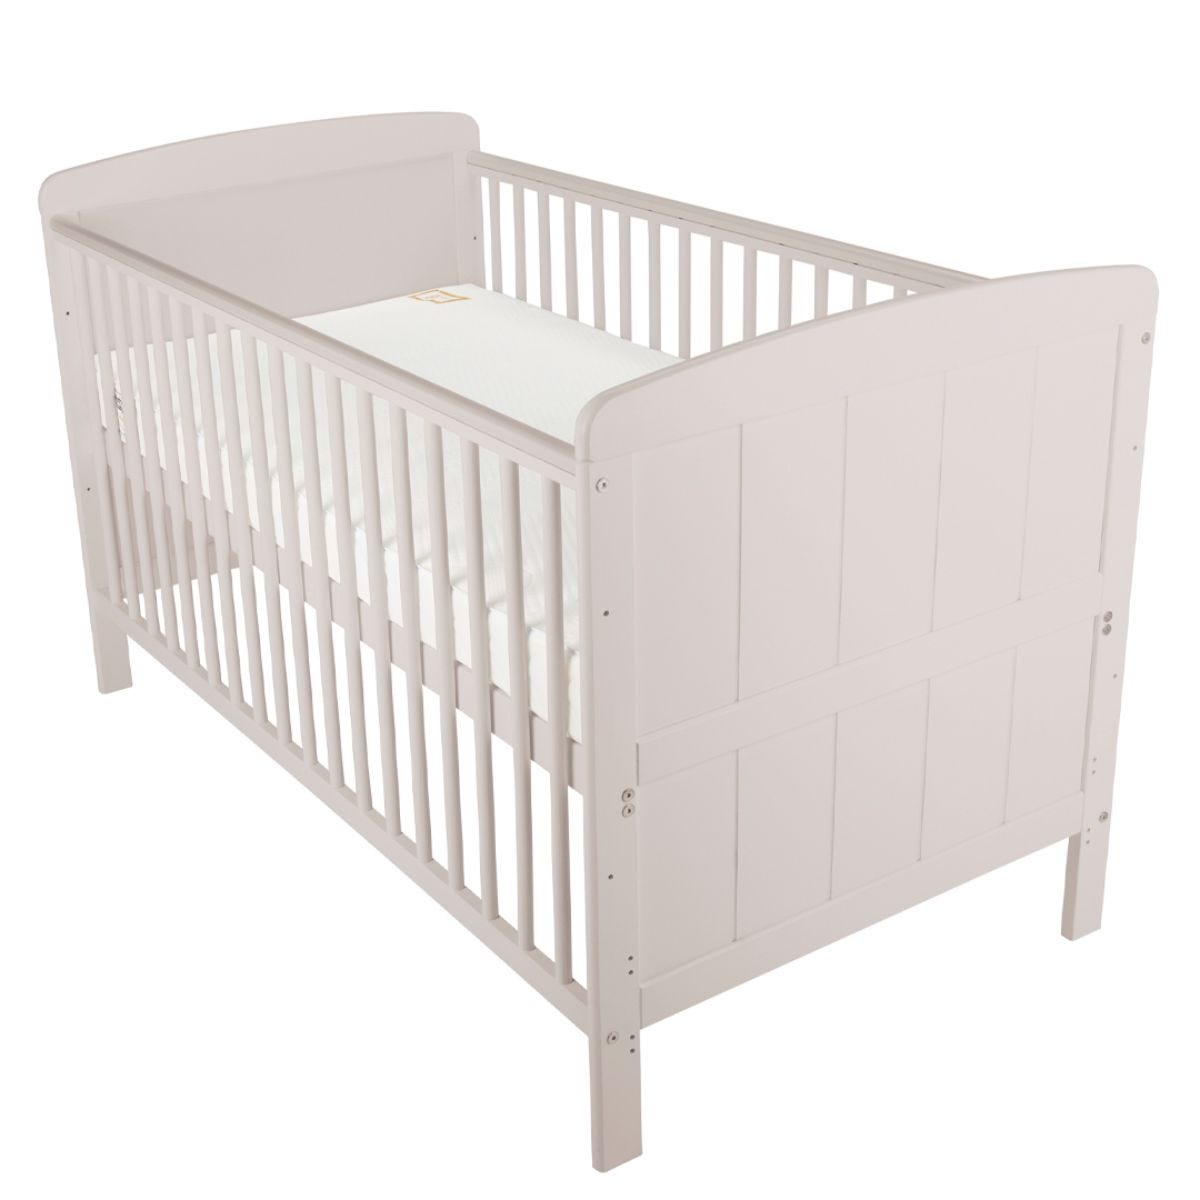 CuddleCo Juliet Cot Bed with Mother & Baby First Gold Foam Mattress Dove Grey